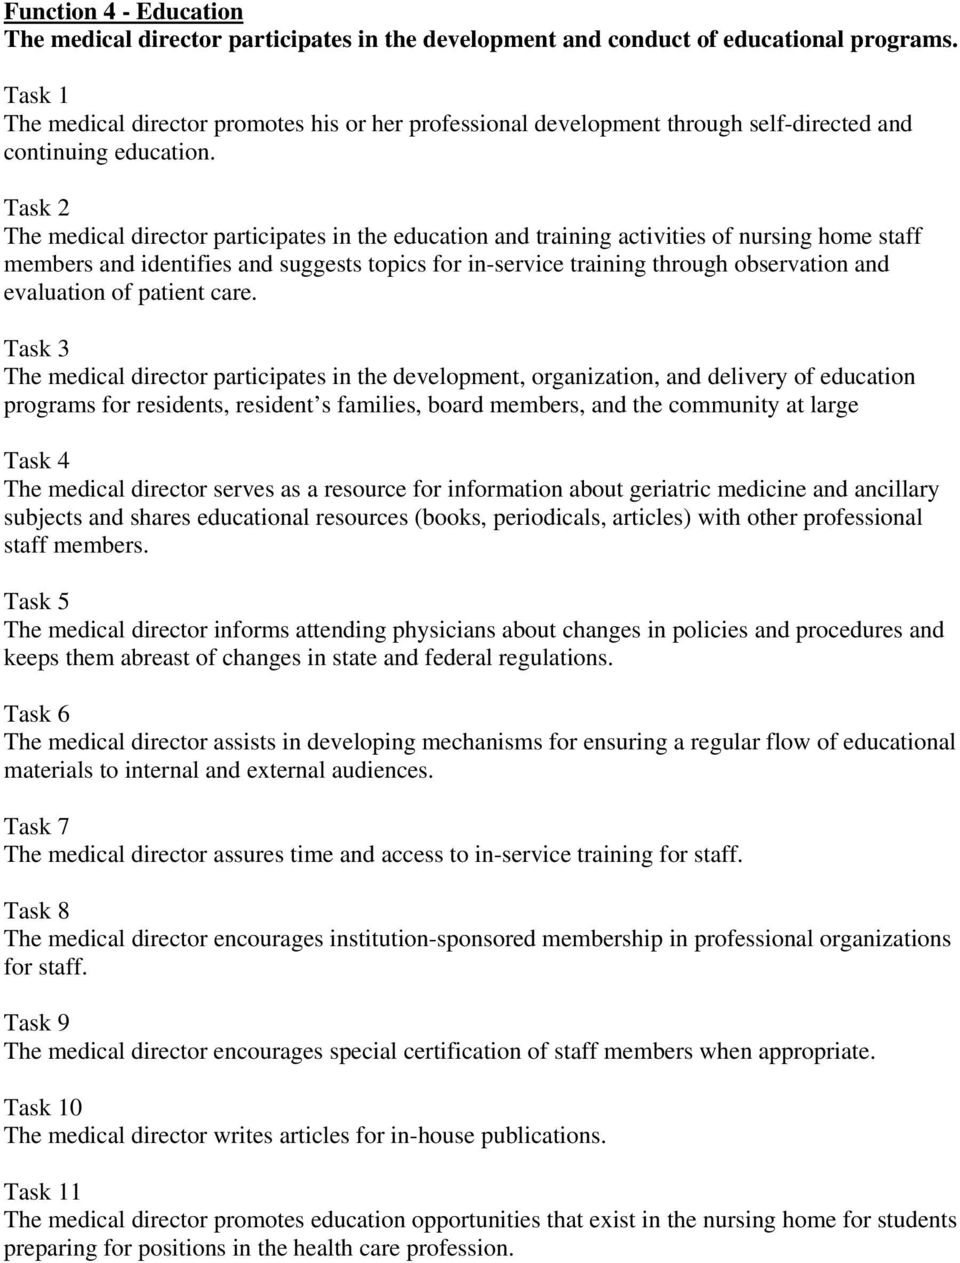 The medical director participates in the education and training activities of nursing home staff members and identifies and suggests topics for in-service training through observation and evaluation